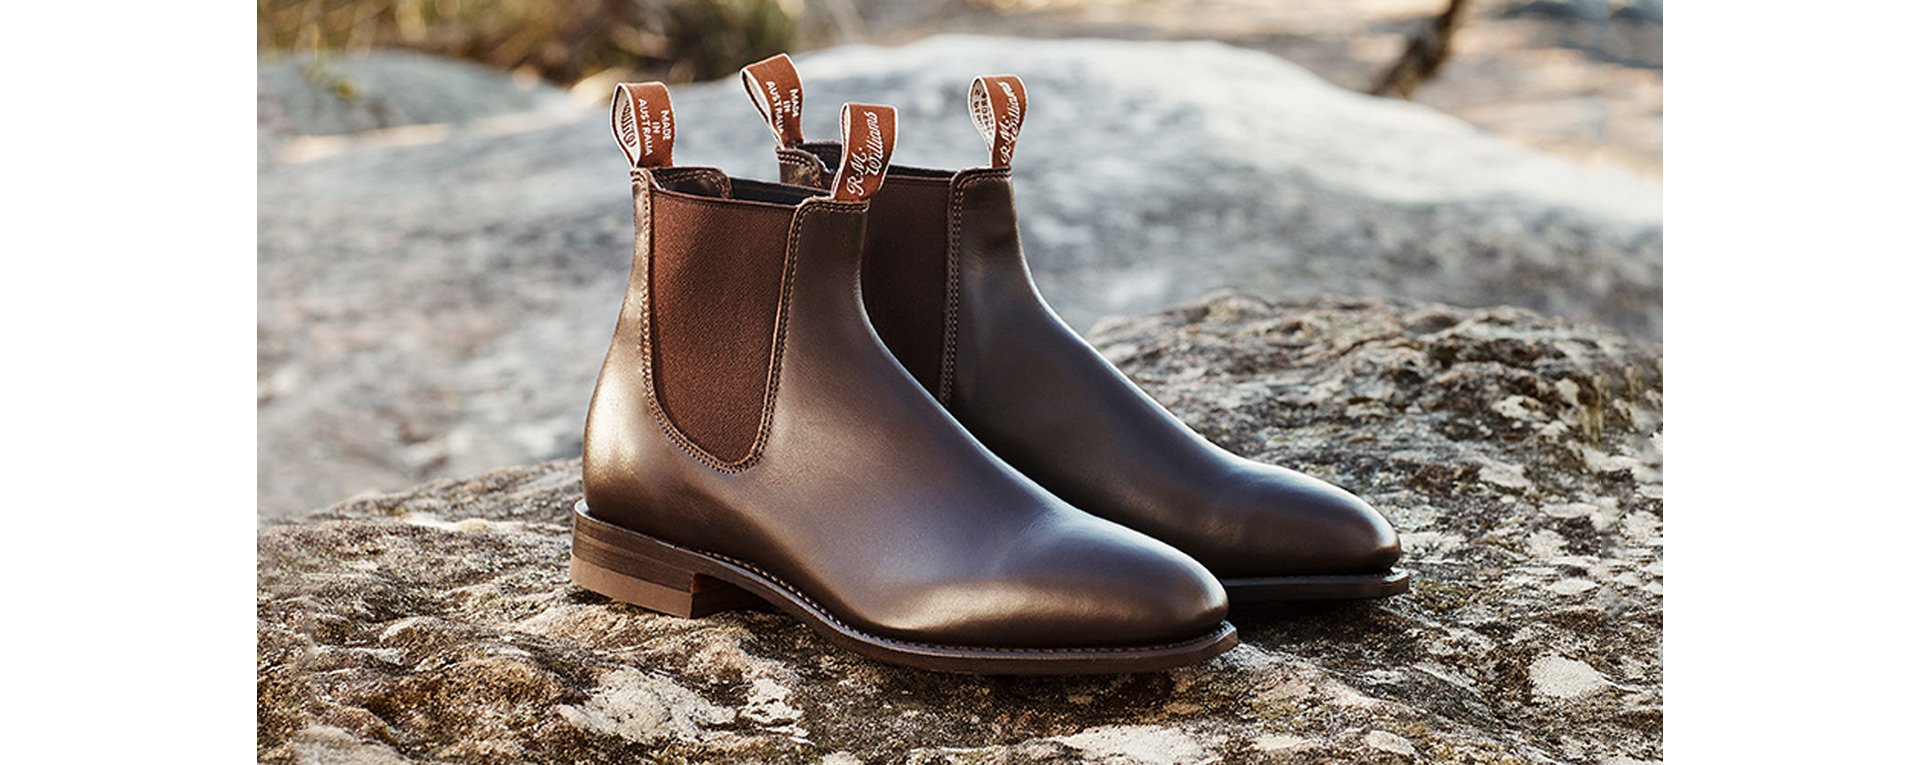 7ce3844842f 30 Essential Fall Boots for Men - InsideHook